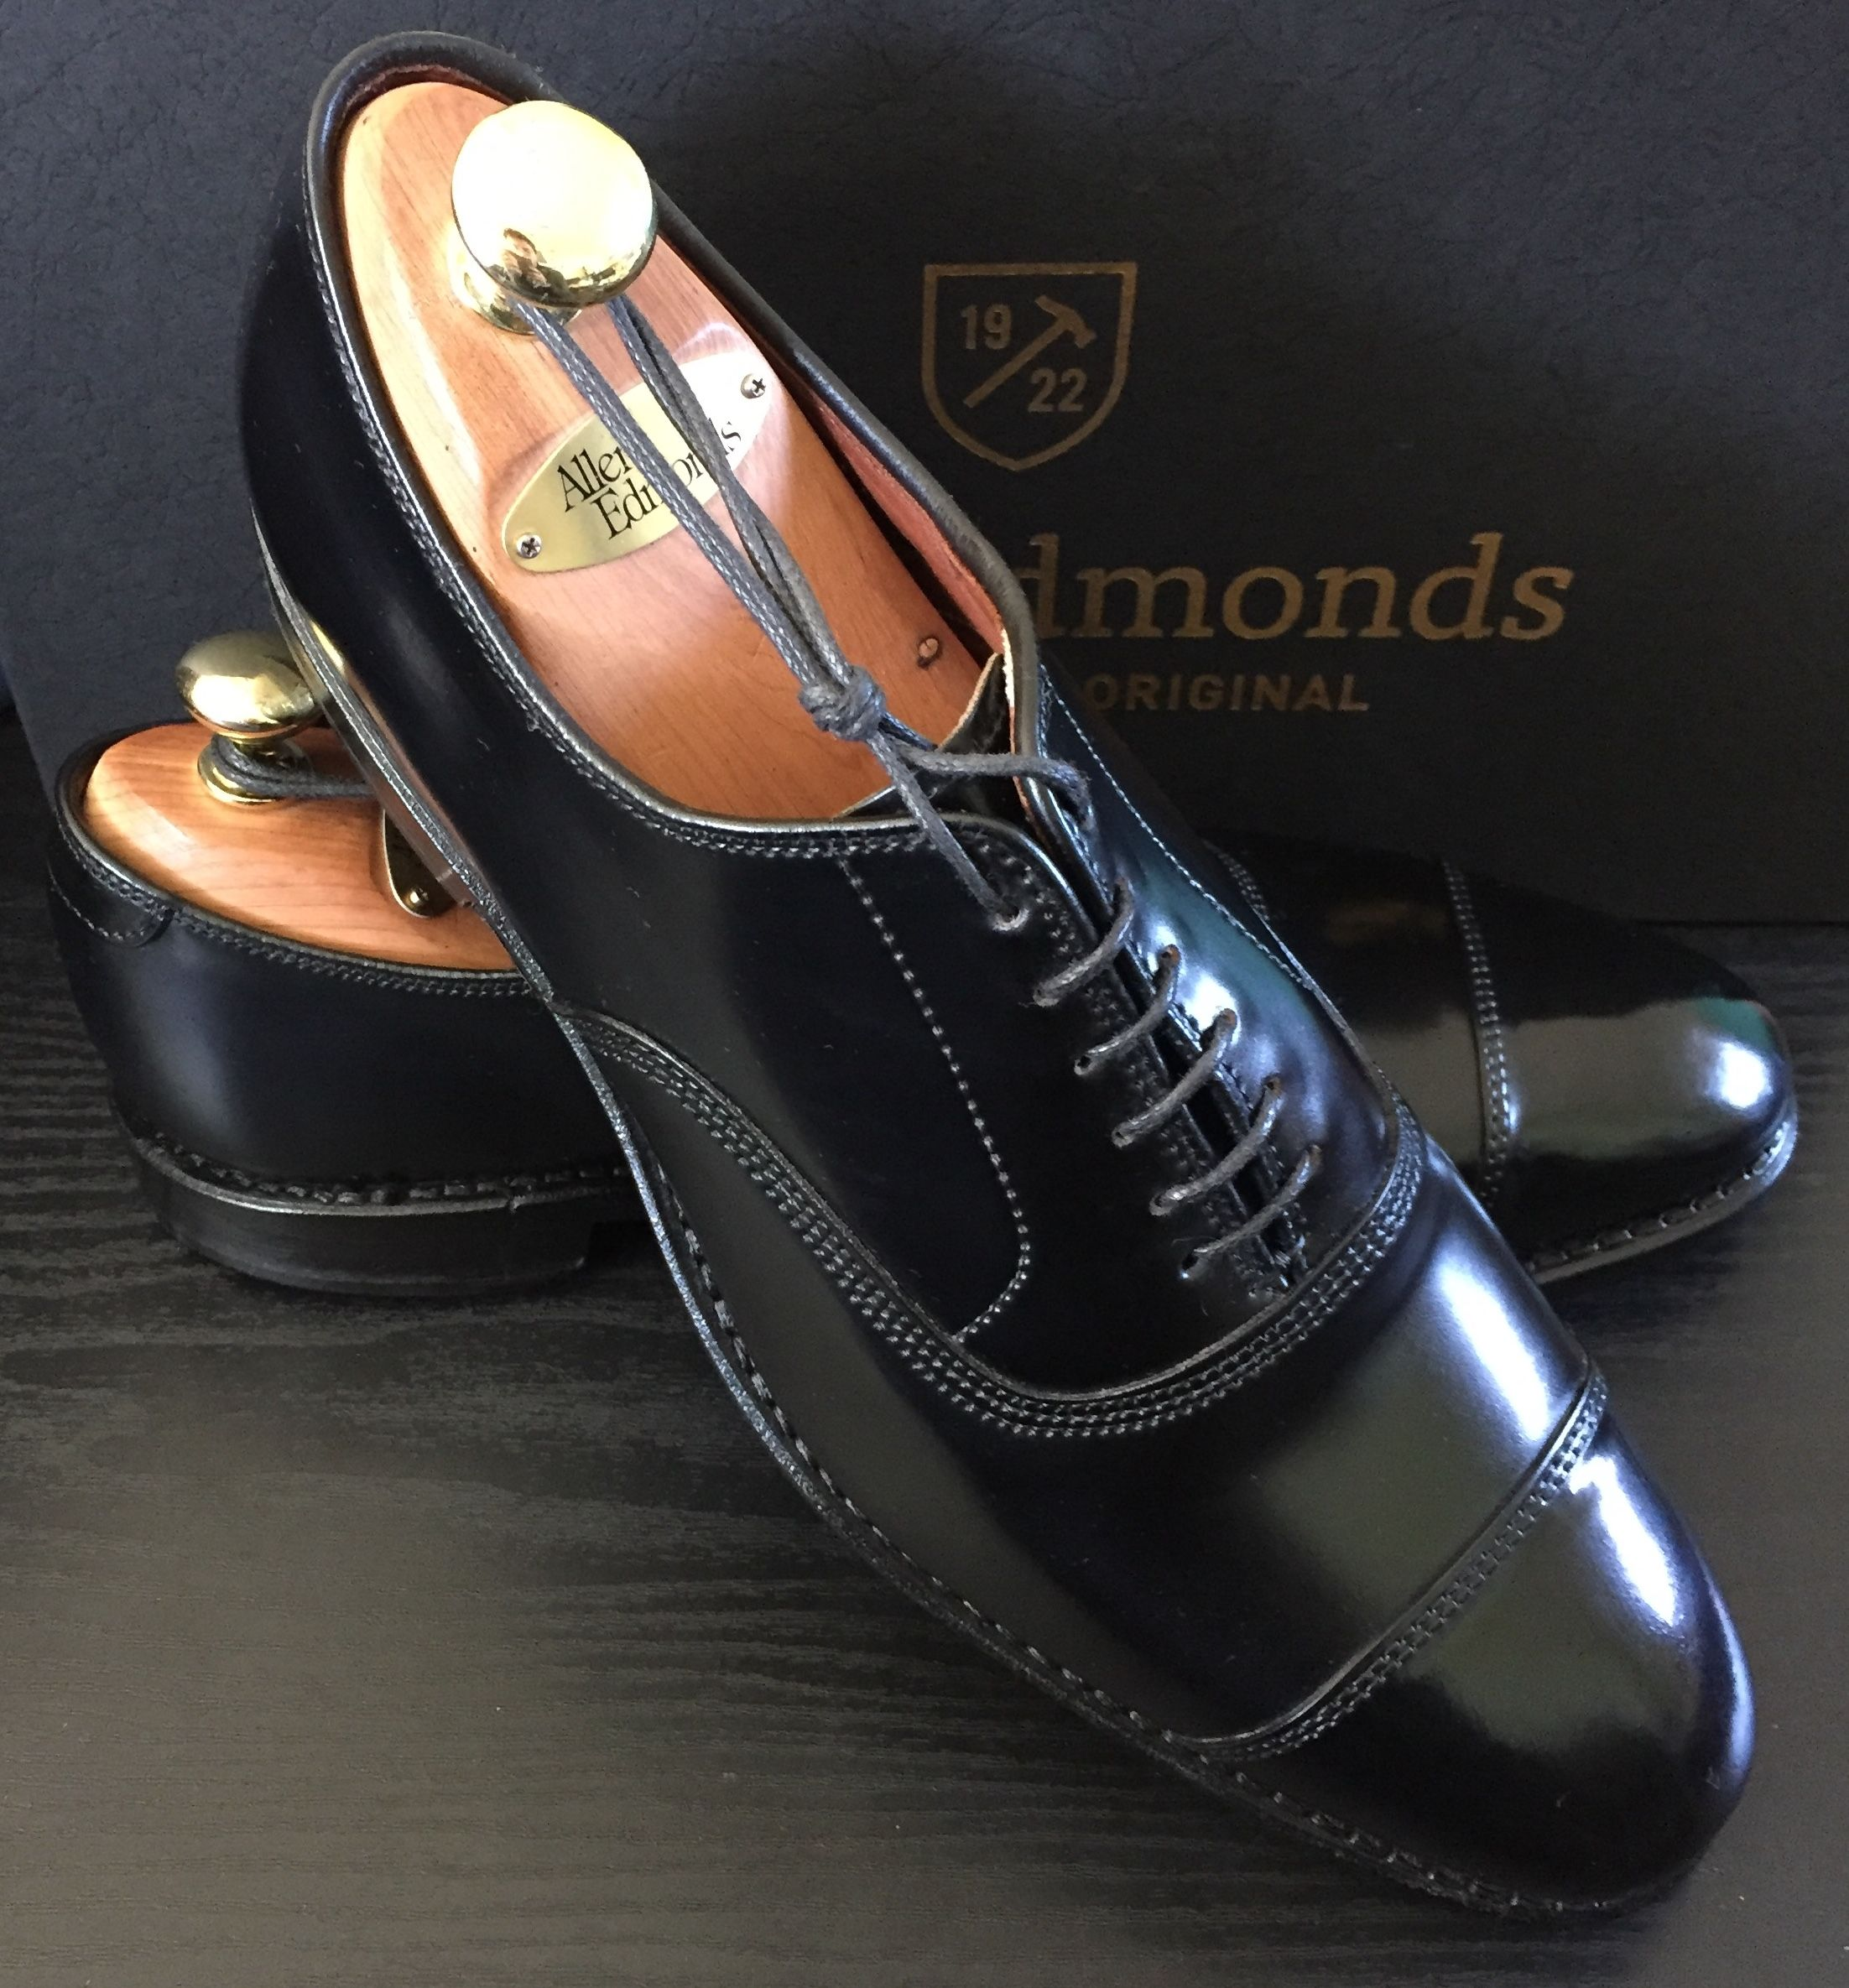 84134f0ea317 Allen Edmonds Park Avenue Cap Toe Balmoral Oxford in Genuine Horween Black  Shell Cordovan with Single J. Rendenbach Leather Soles and Dove Tail  Leather ...